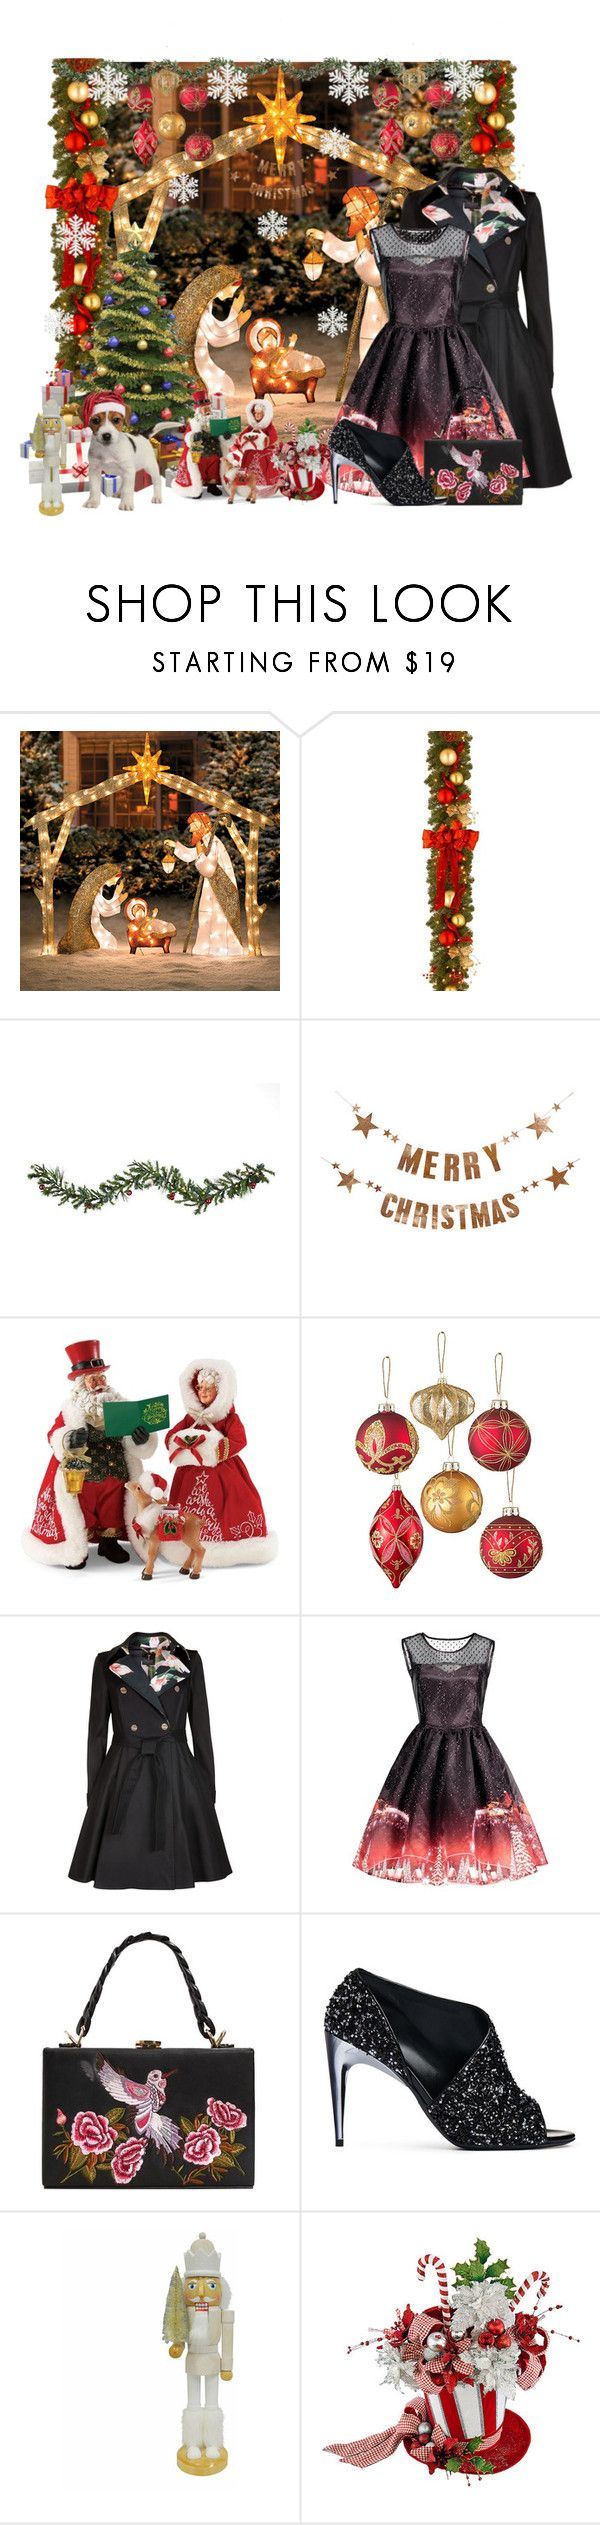 """""""Untitled #139"""" by kjkrios ❤ liked on Polyvore featuring Improvements, National Tree Company, Bloomingville, Department 56, Ted Baker, MANGO, La Perla, St. Nicholas Square and Frontgate"""